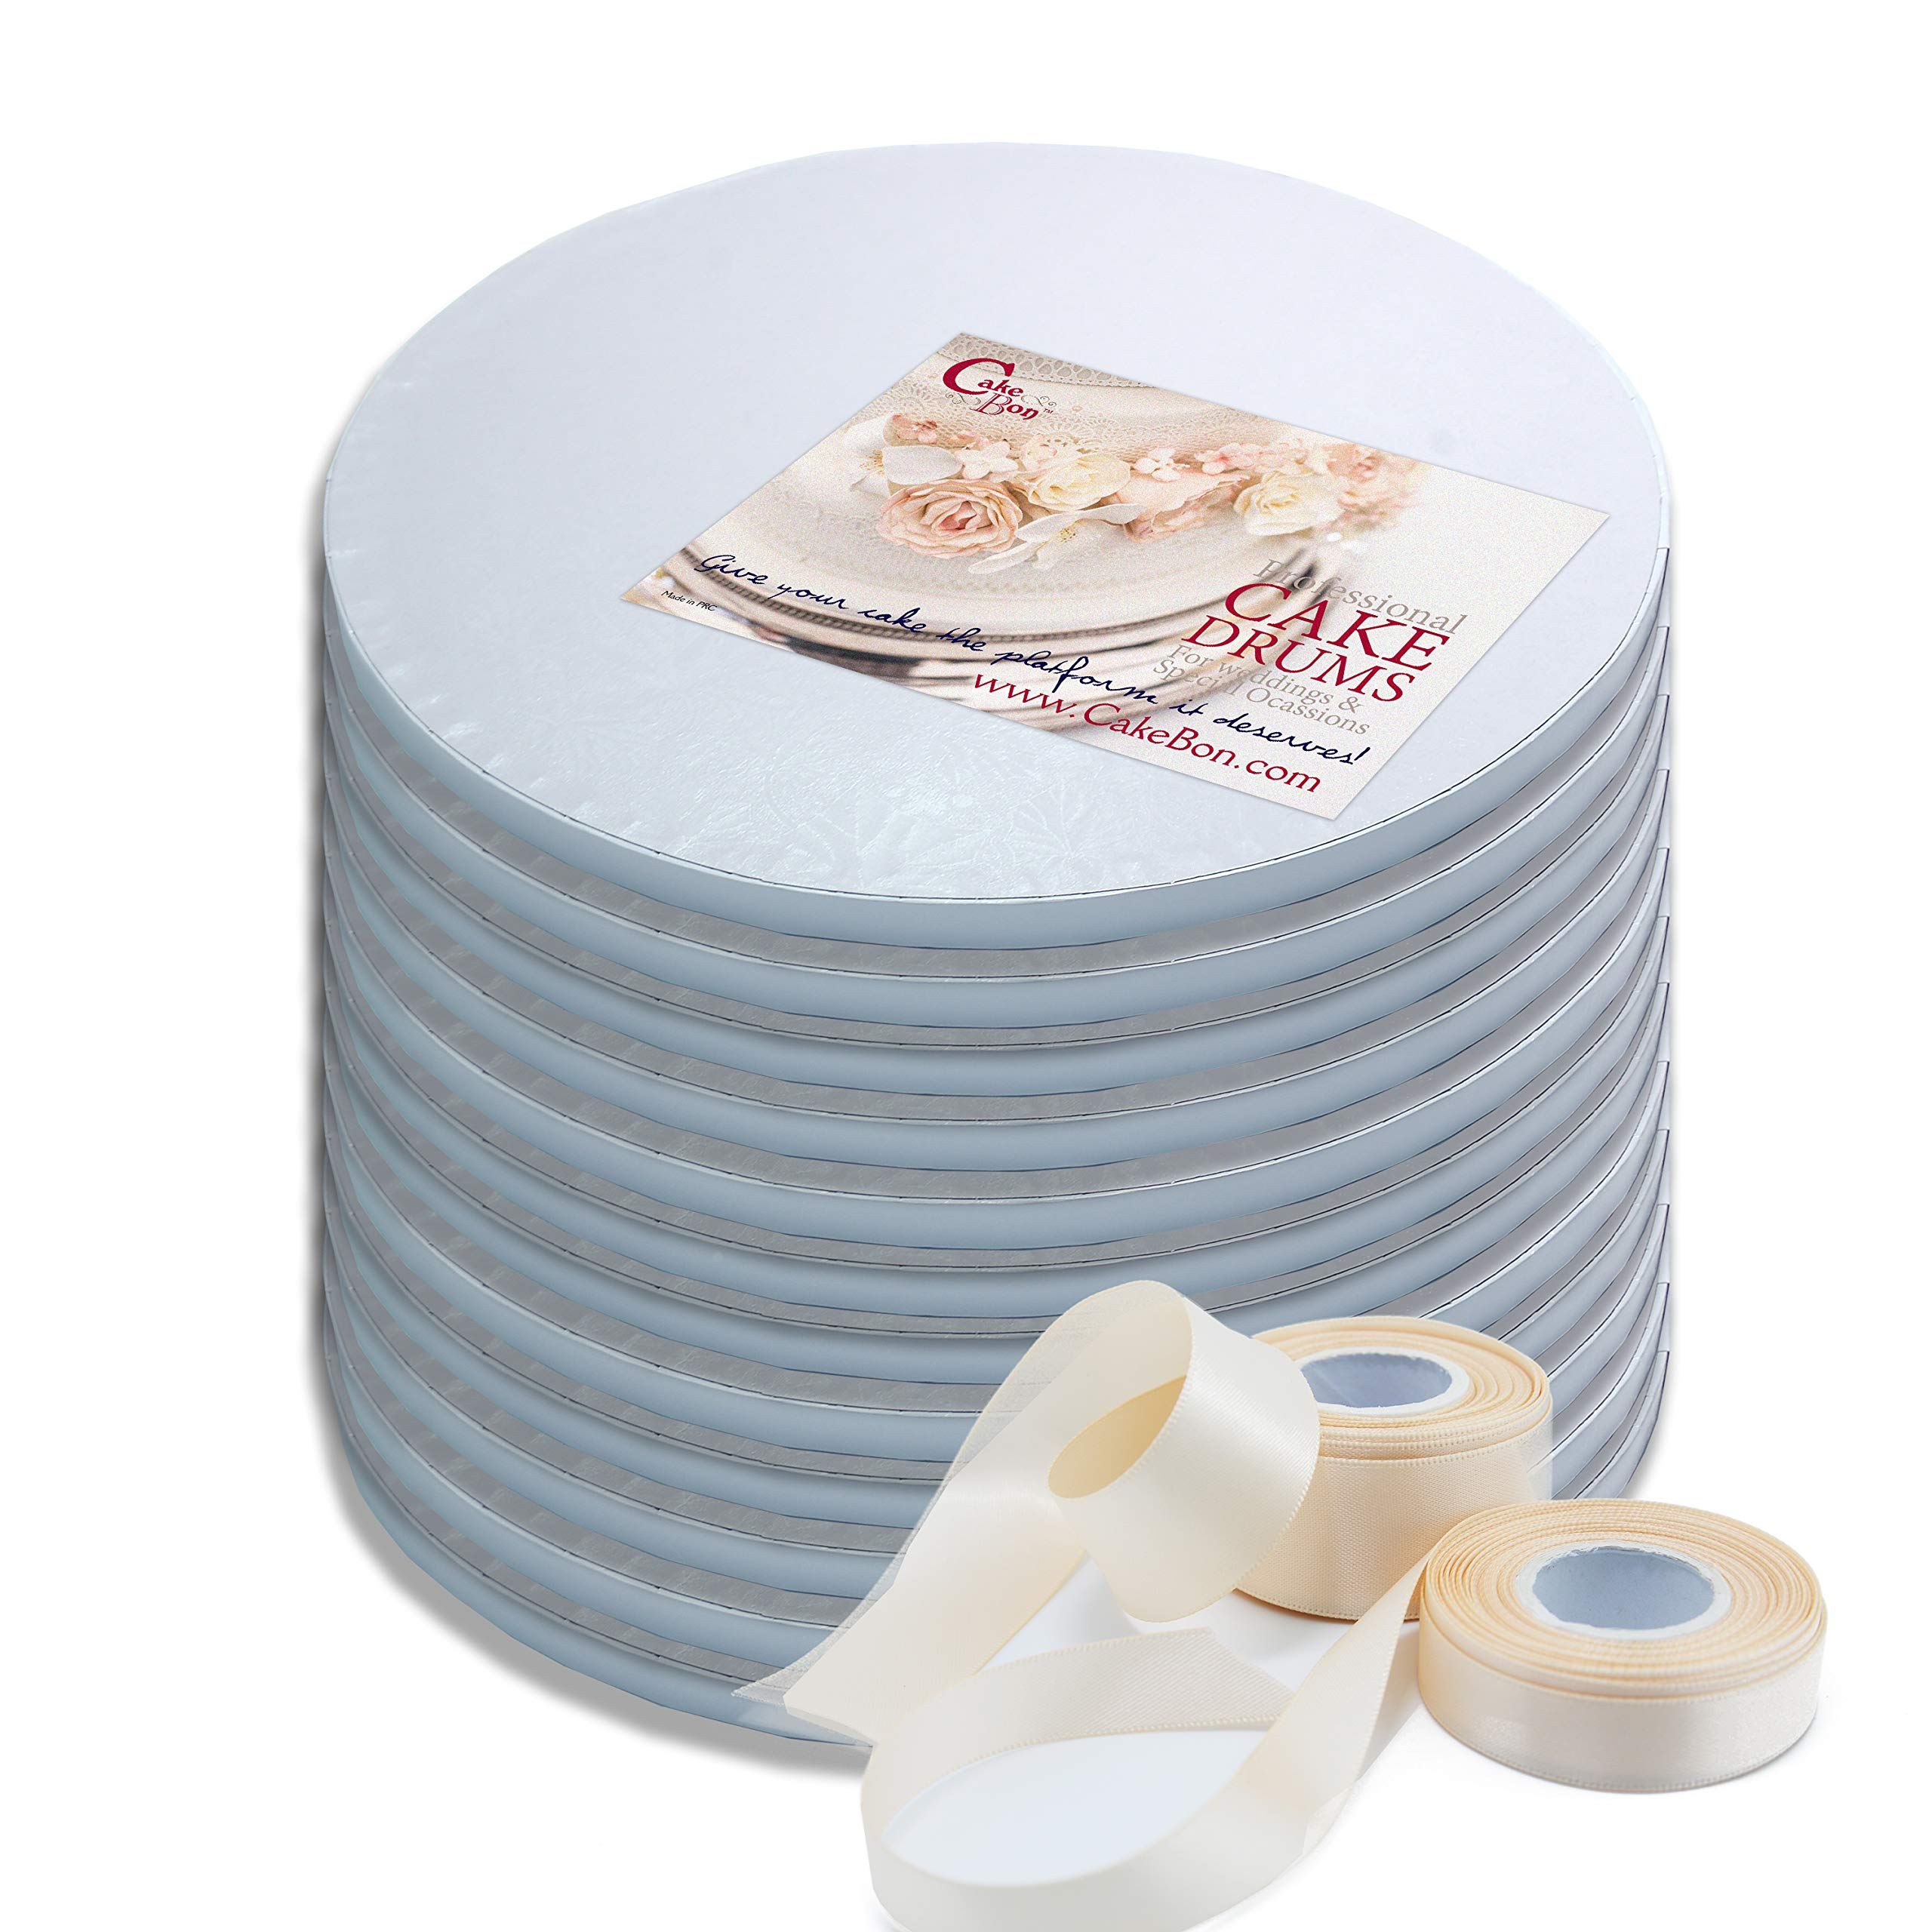 Cake Drums Round 12 Inches - Sturdy 1/2 Inch Thick - Professional Smooth Straight Edges - FREE Satin Cake Ribbon (White, 12-Pack)